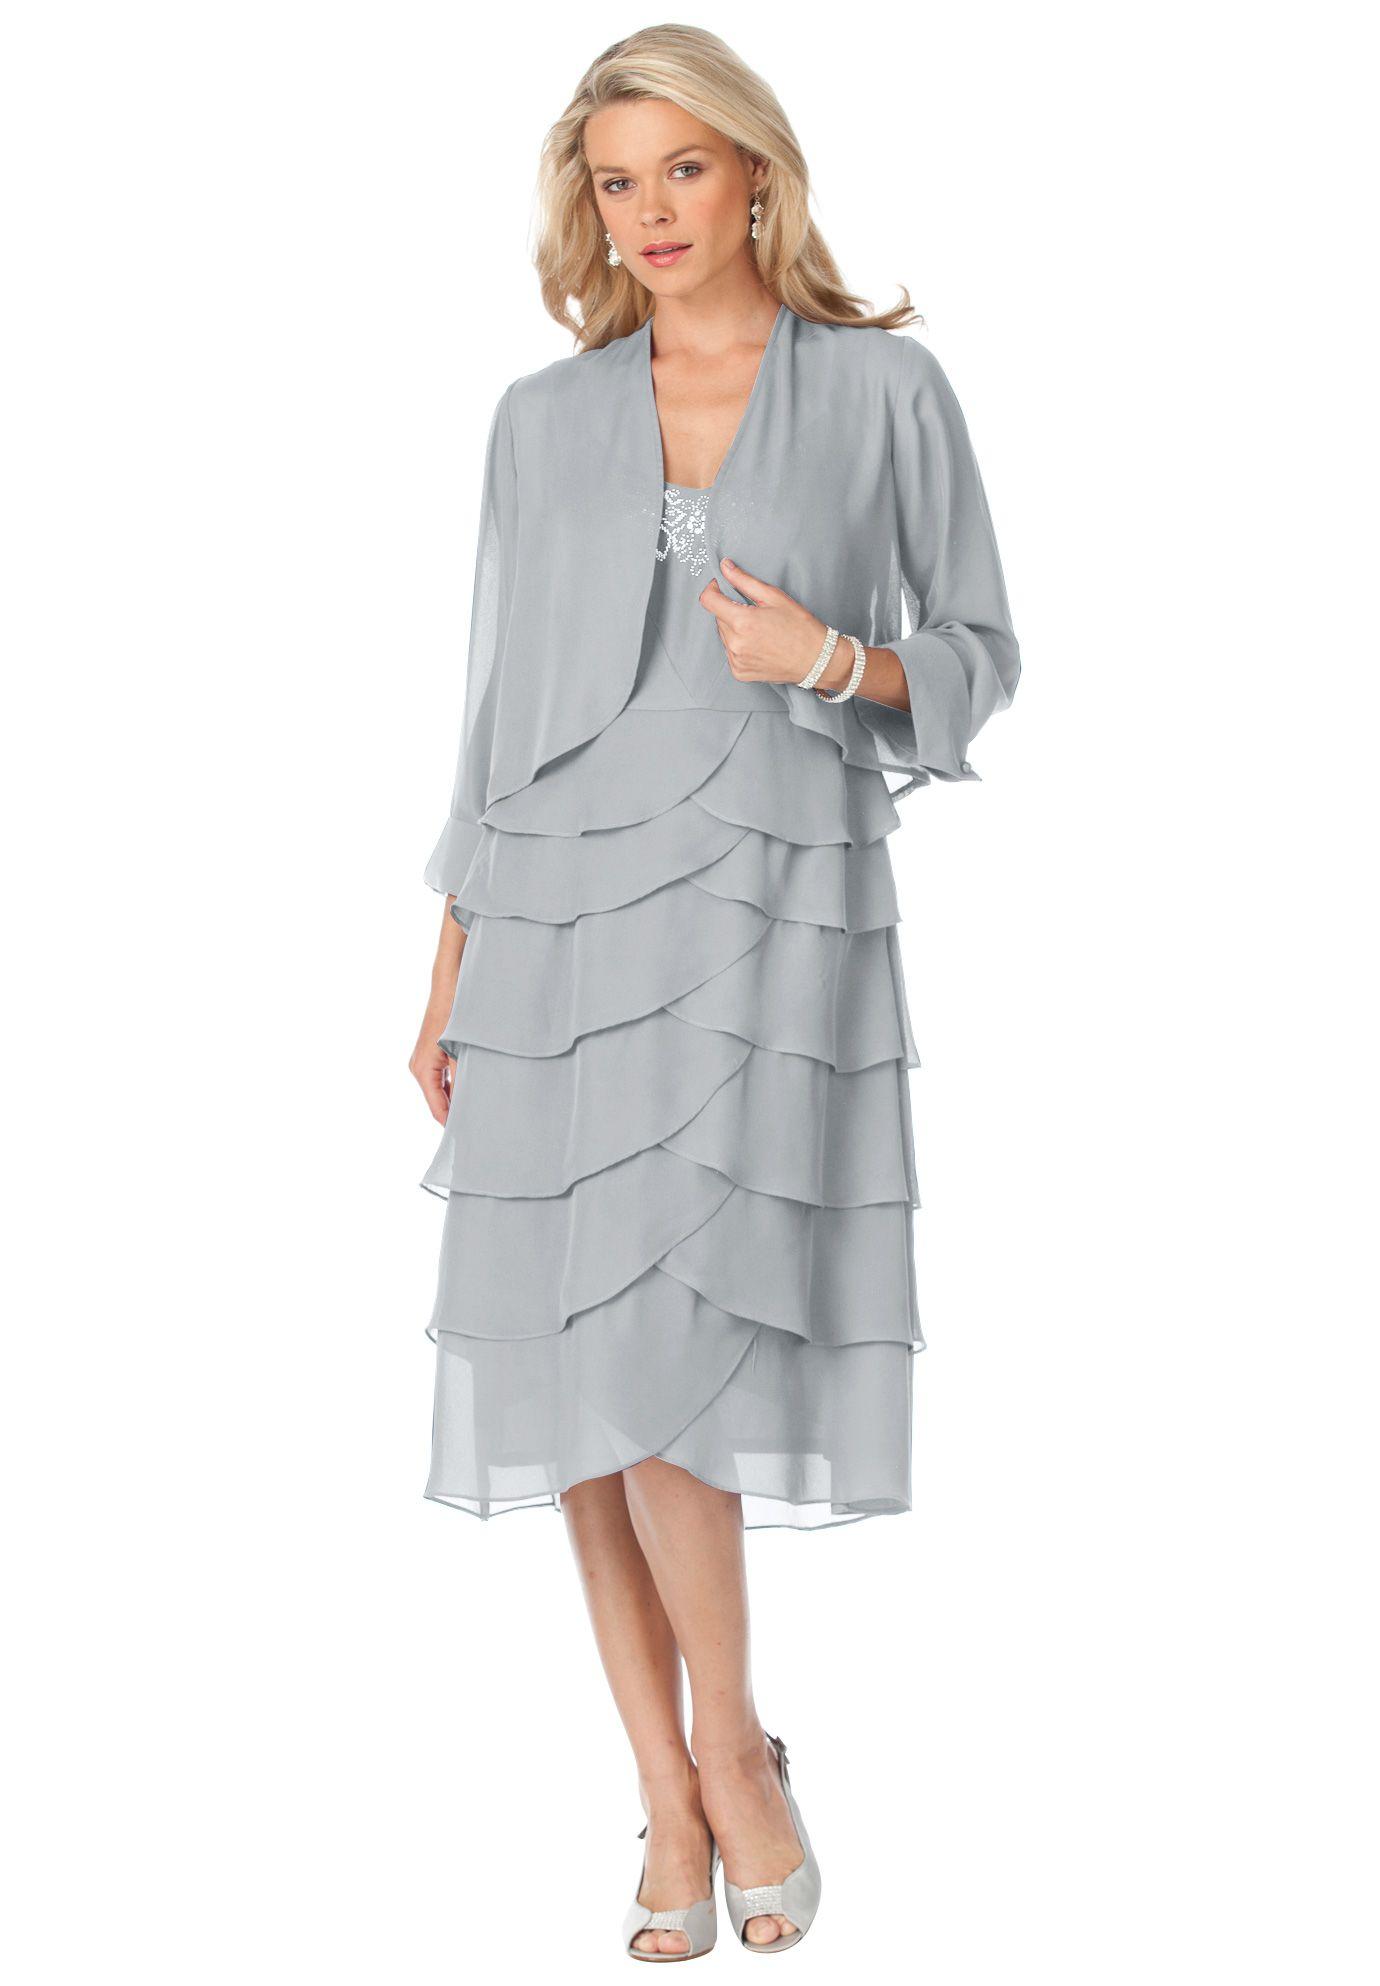 Tiered Jacket Dress Plus Size Special Occasion Shop Fullbeauty